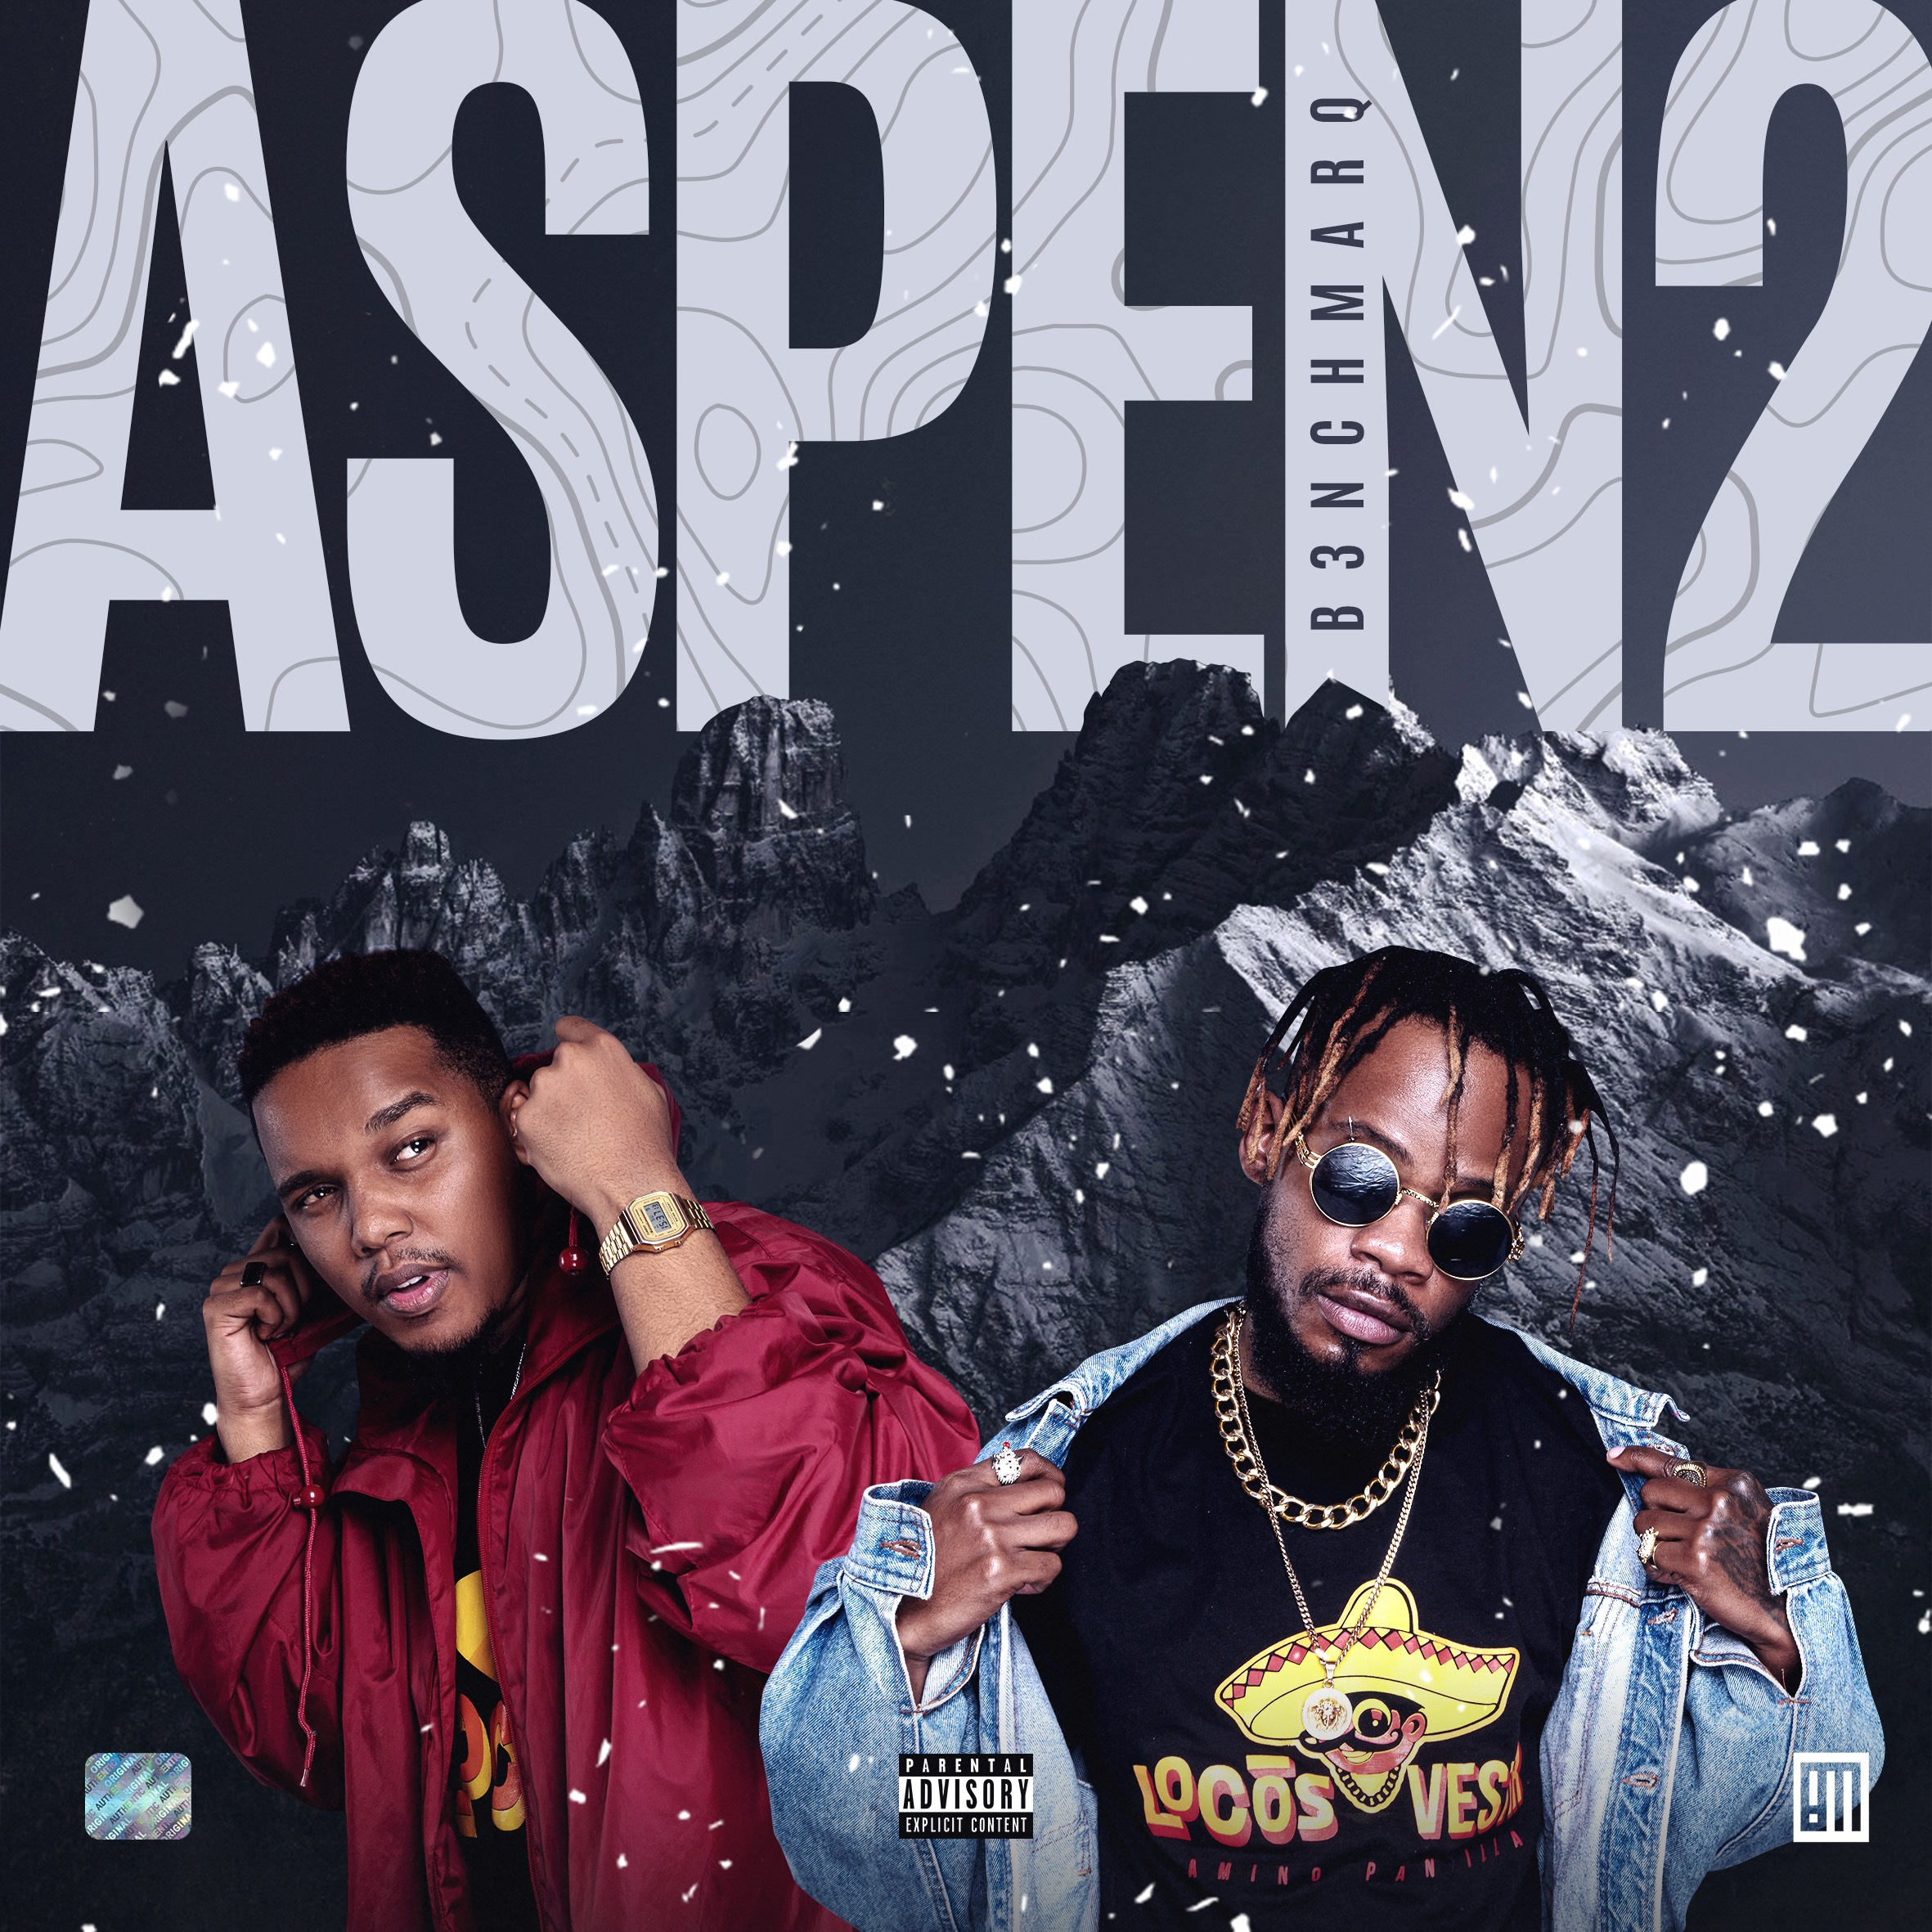 b3nchmarq B3nchMarQ Drop 'Aspen 2' Album Cover/Tracklist Plus New 'Hyperbolic Chamber' Joint Ft. Flame [Listen] Aspen2 Cover Option2Artboard 1